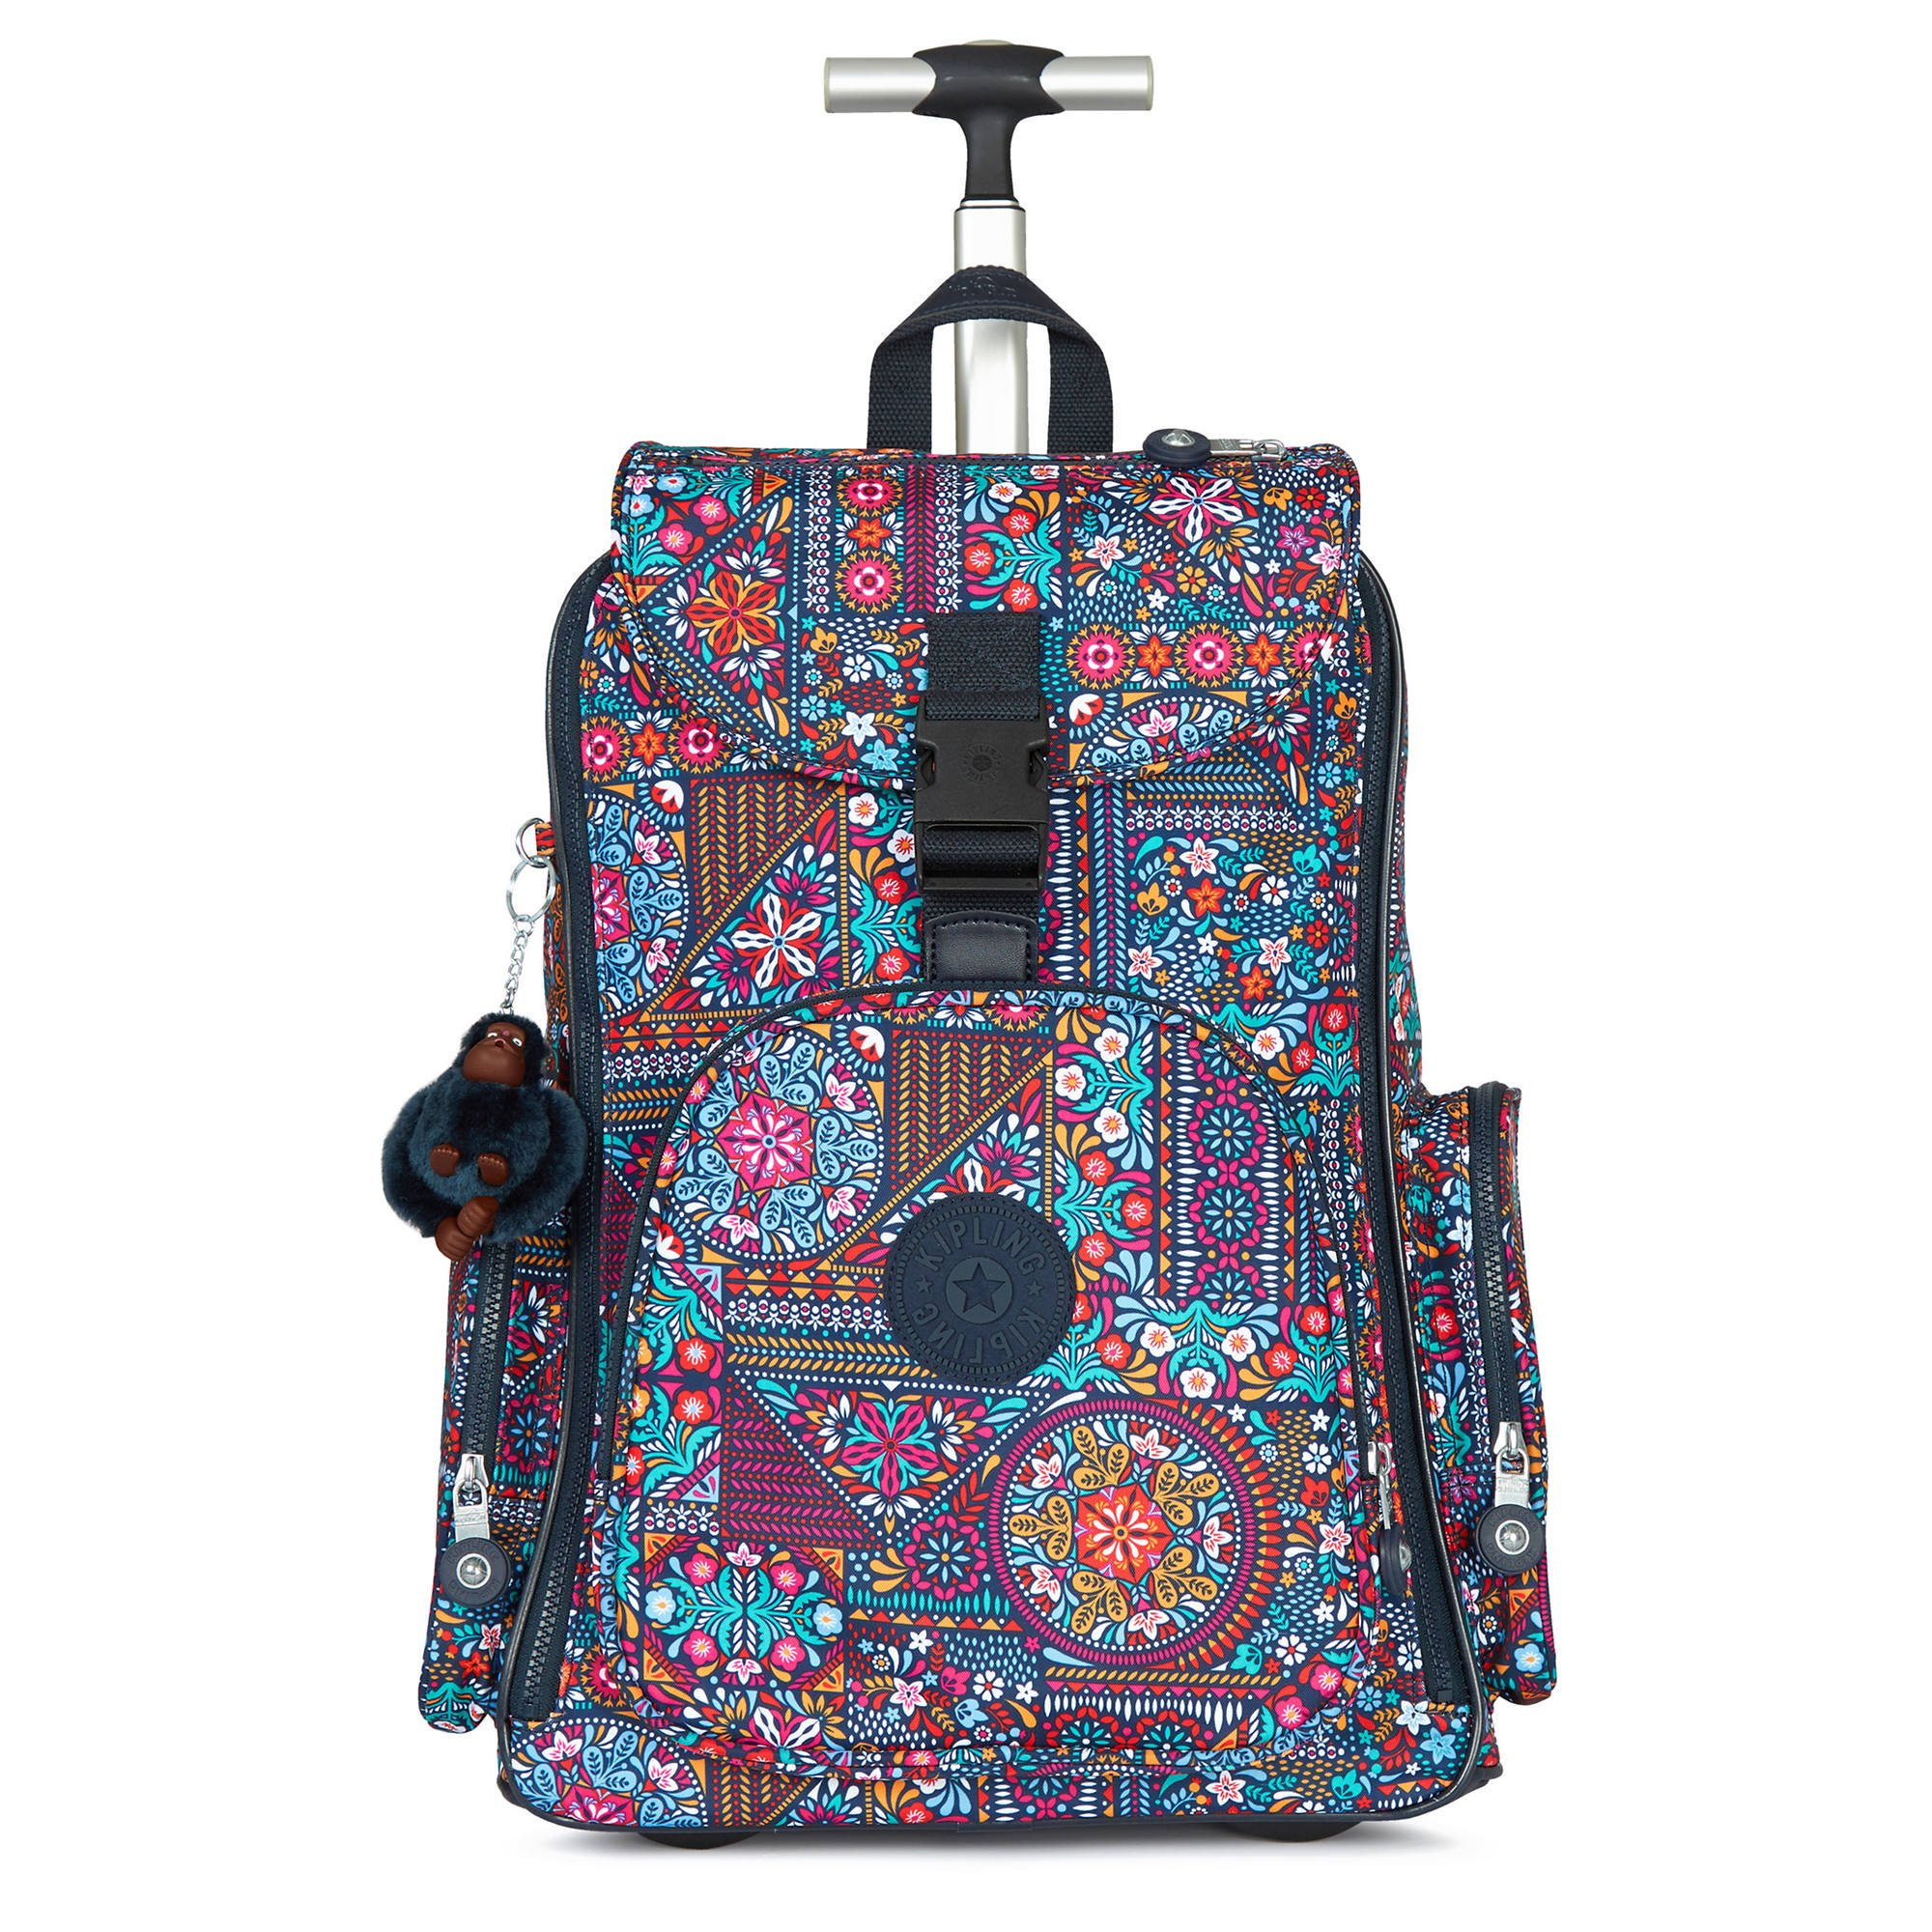 Kipling Women's Alcatraz Ii Printed Rolling Laptop Backpack One Size Dizzy Darling Multi by Kipling (Image #3)